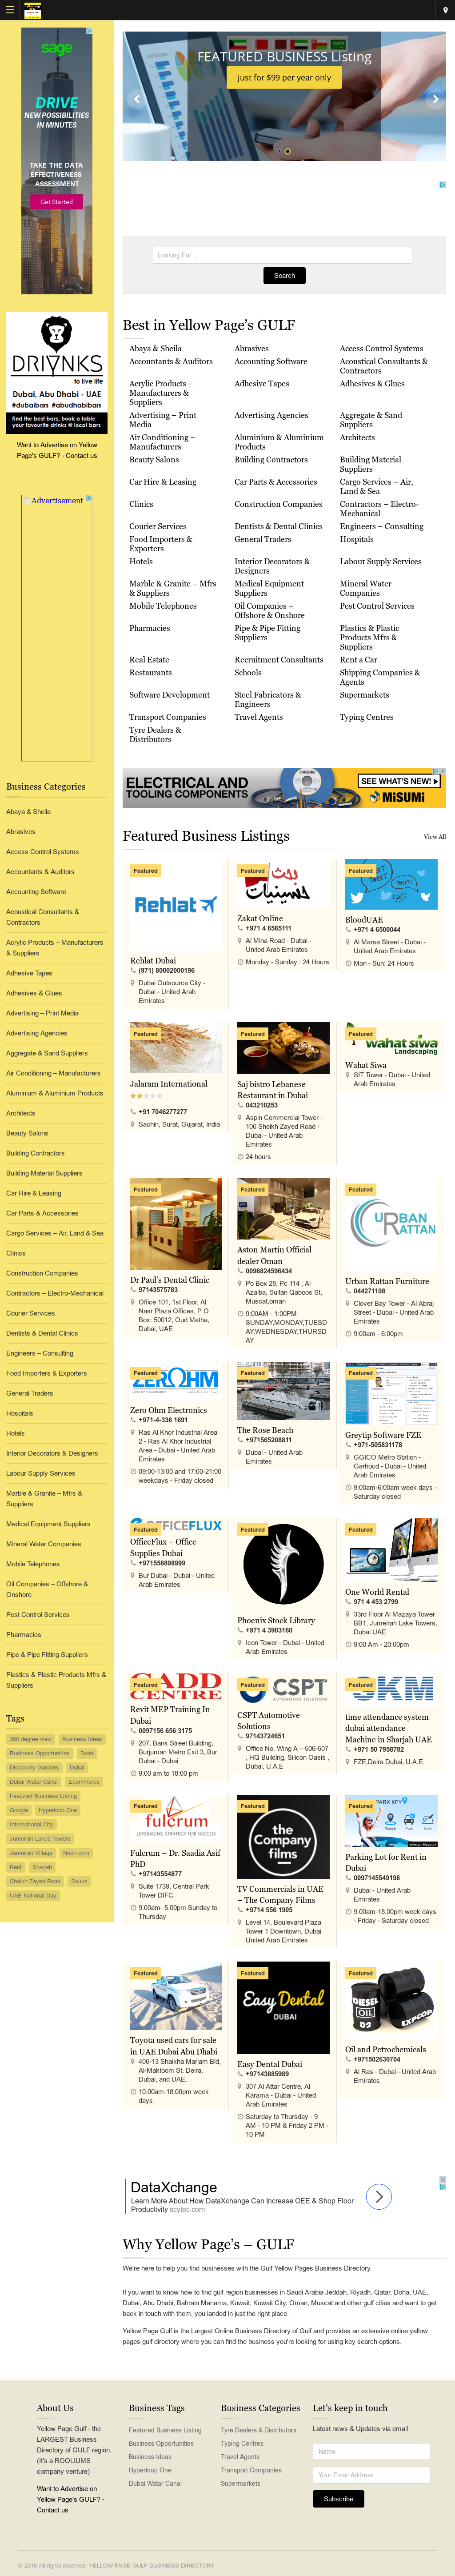 Yellow Pages Gulf Business Directory Competitors, Revenue and